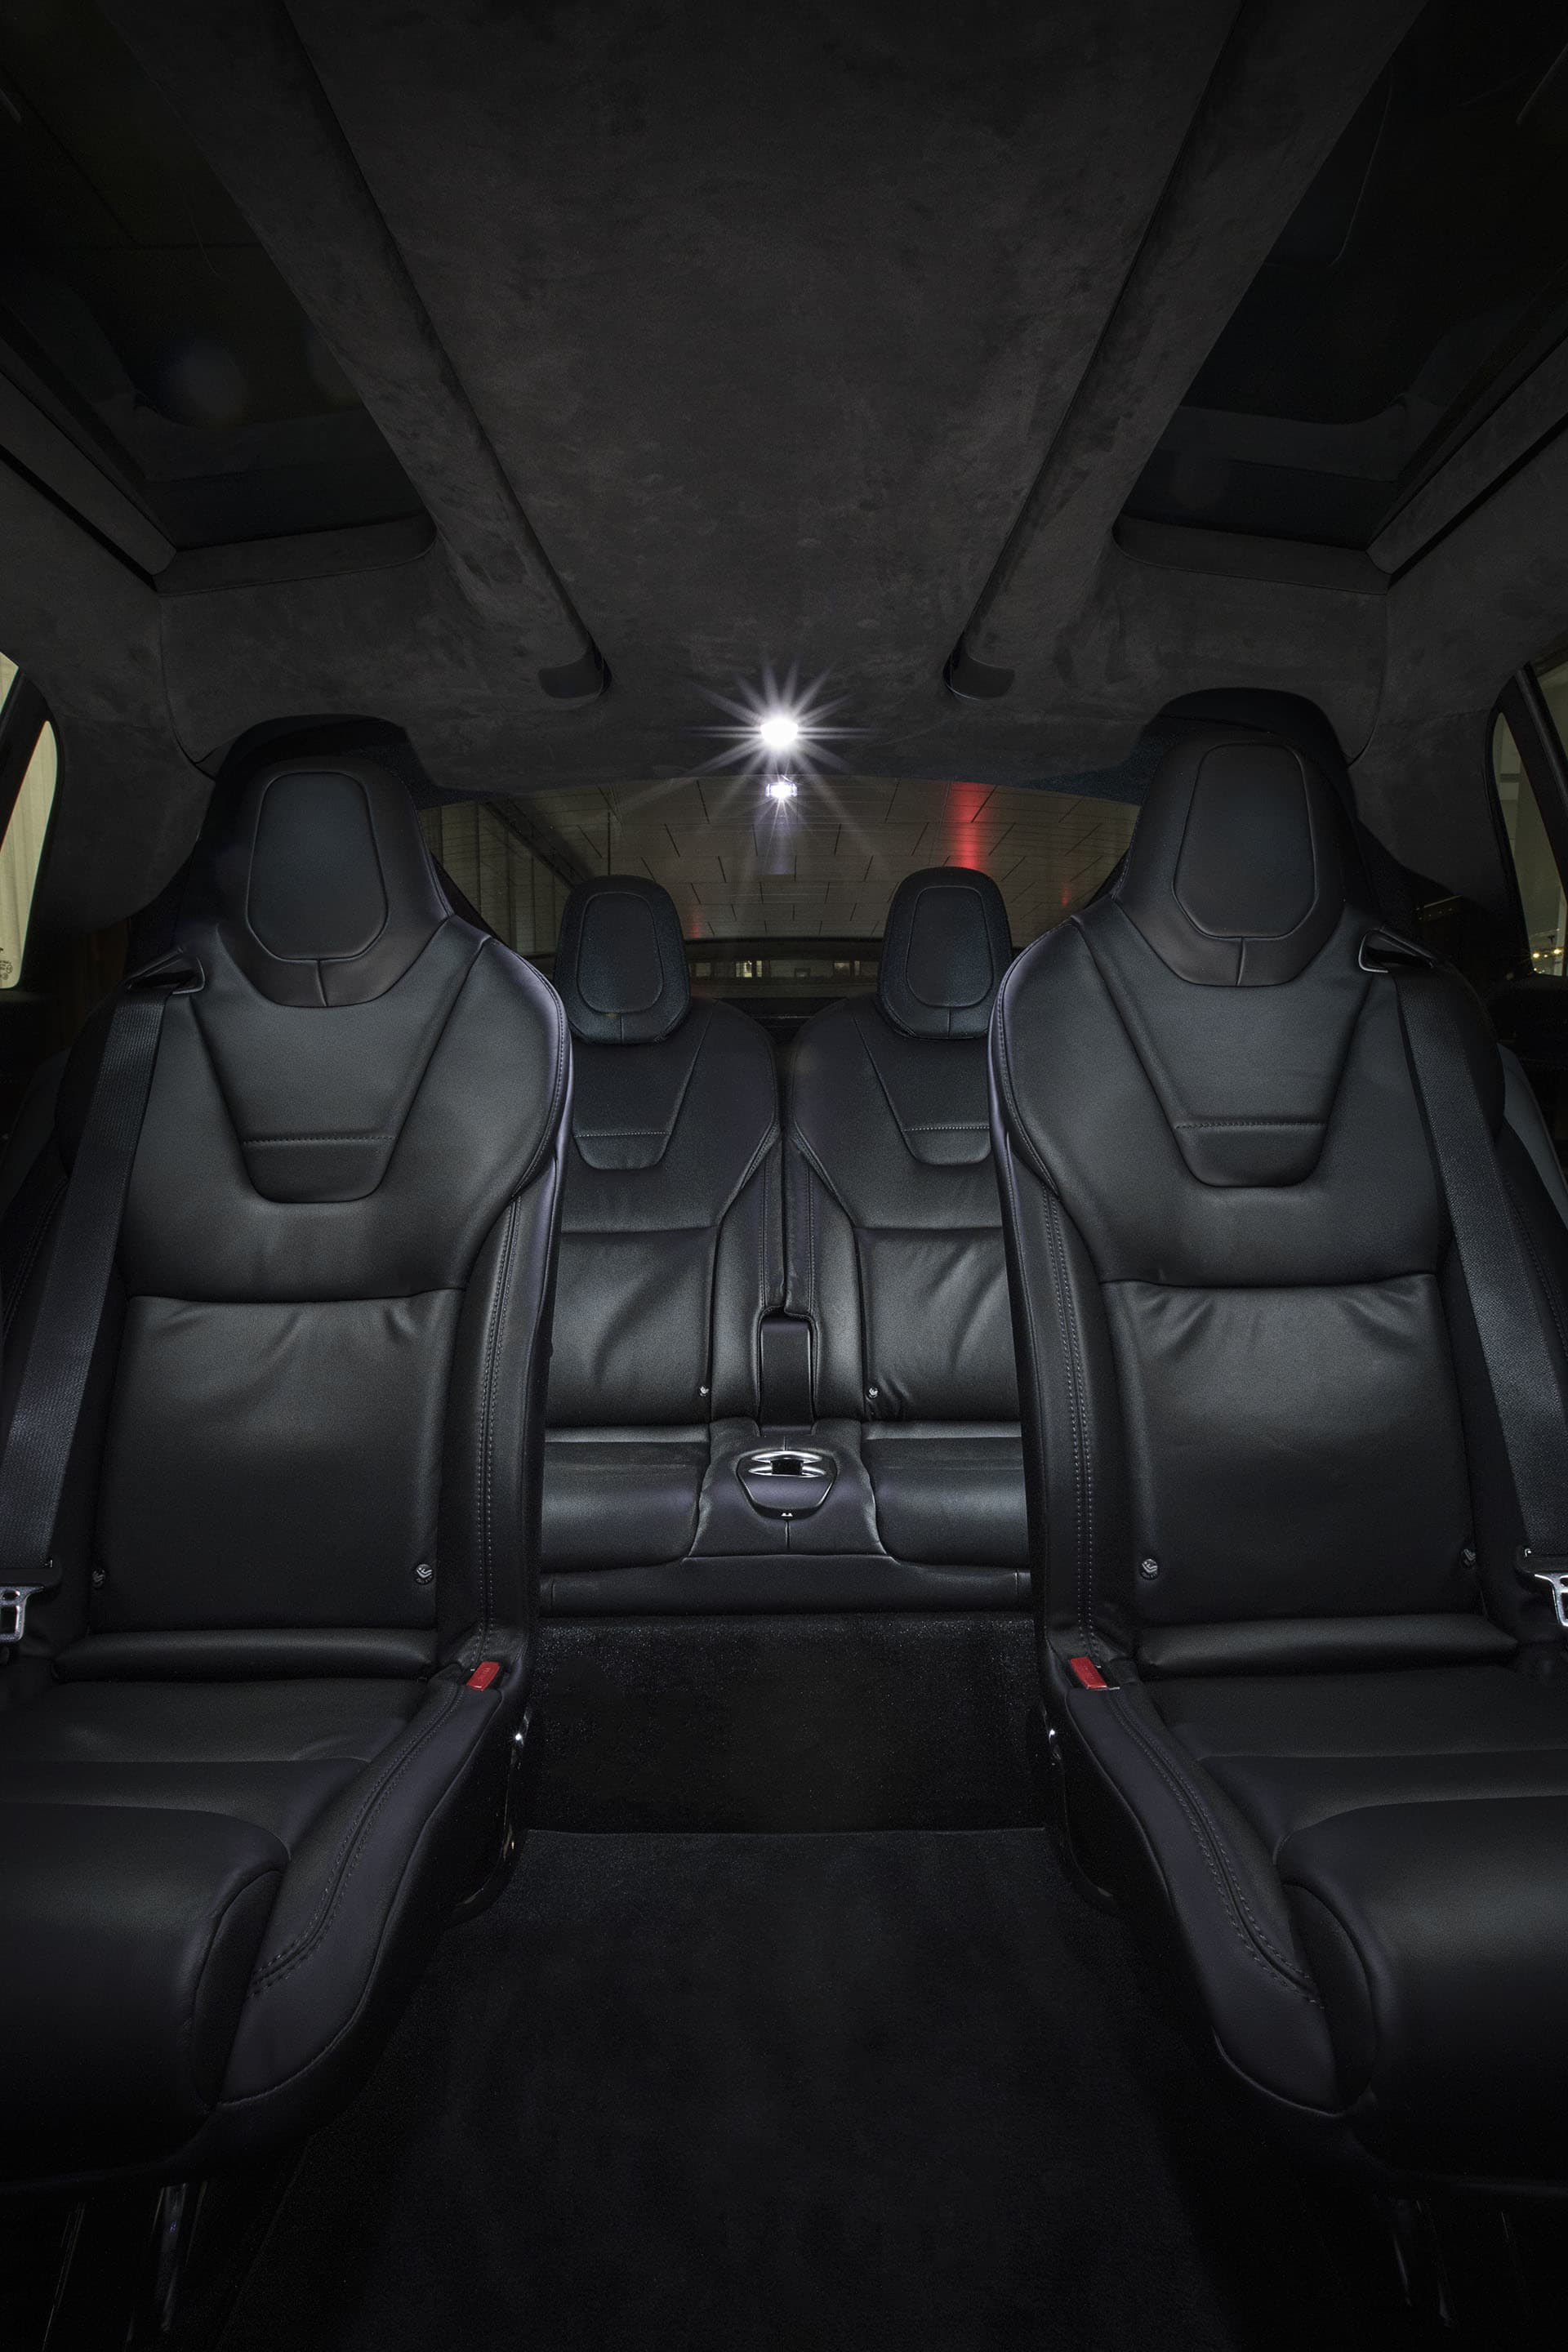 In the Tesla Model X, six people travel incredibly comfortably in separate chairs that can be adjusted.